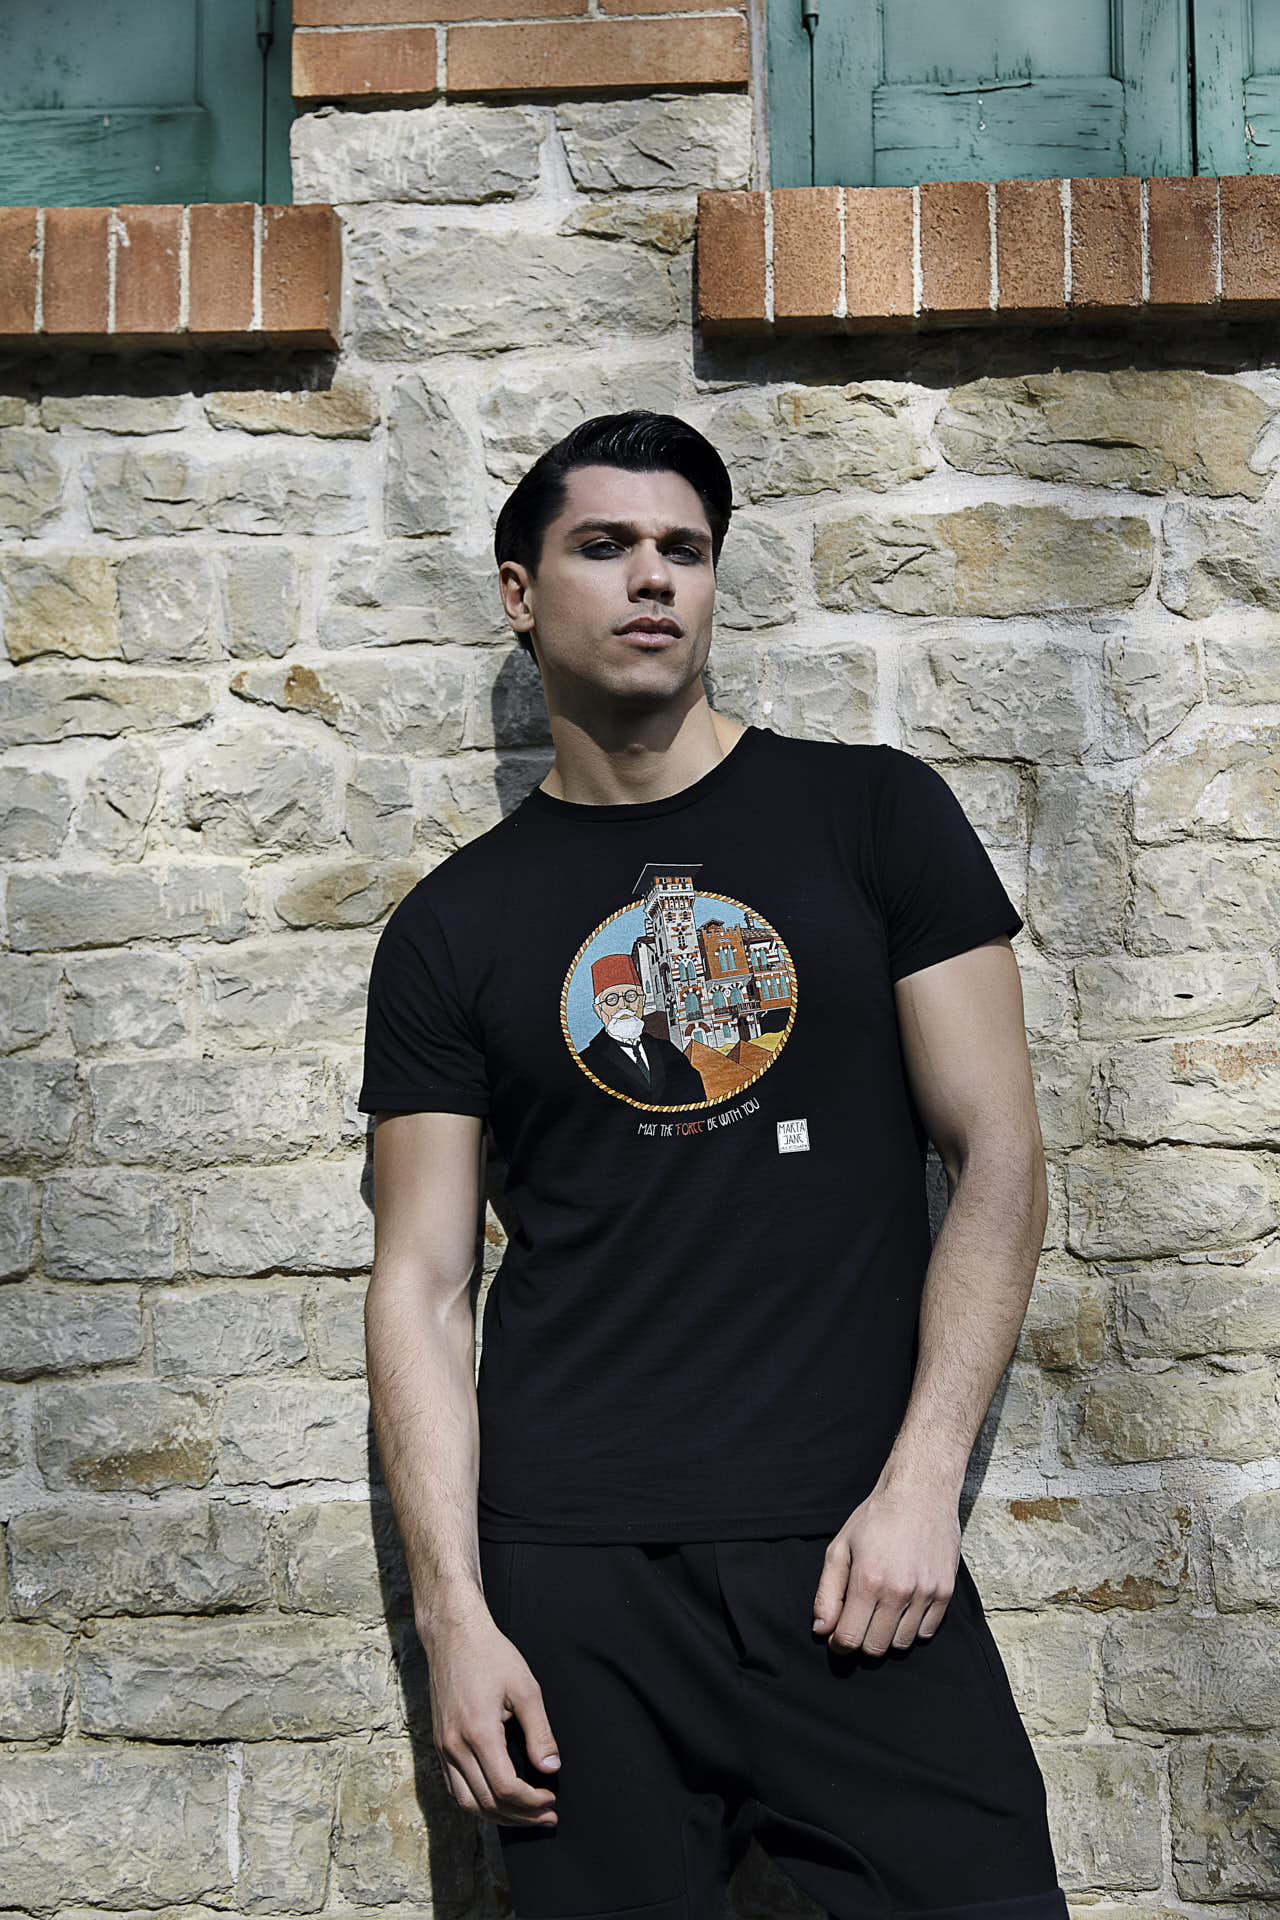 T-Shirt ART FENICE BLACK T-Shirt ART VILLINO VERRUCCI BLACK